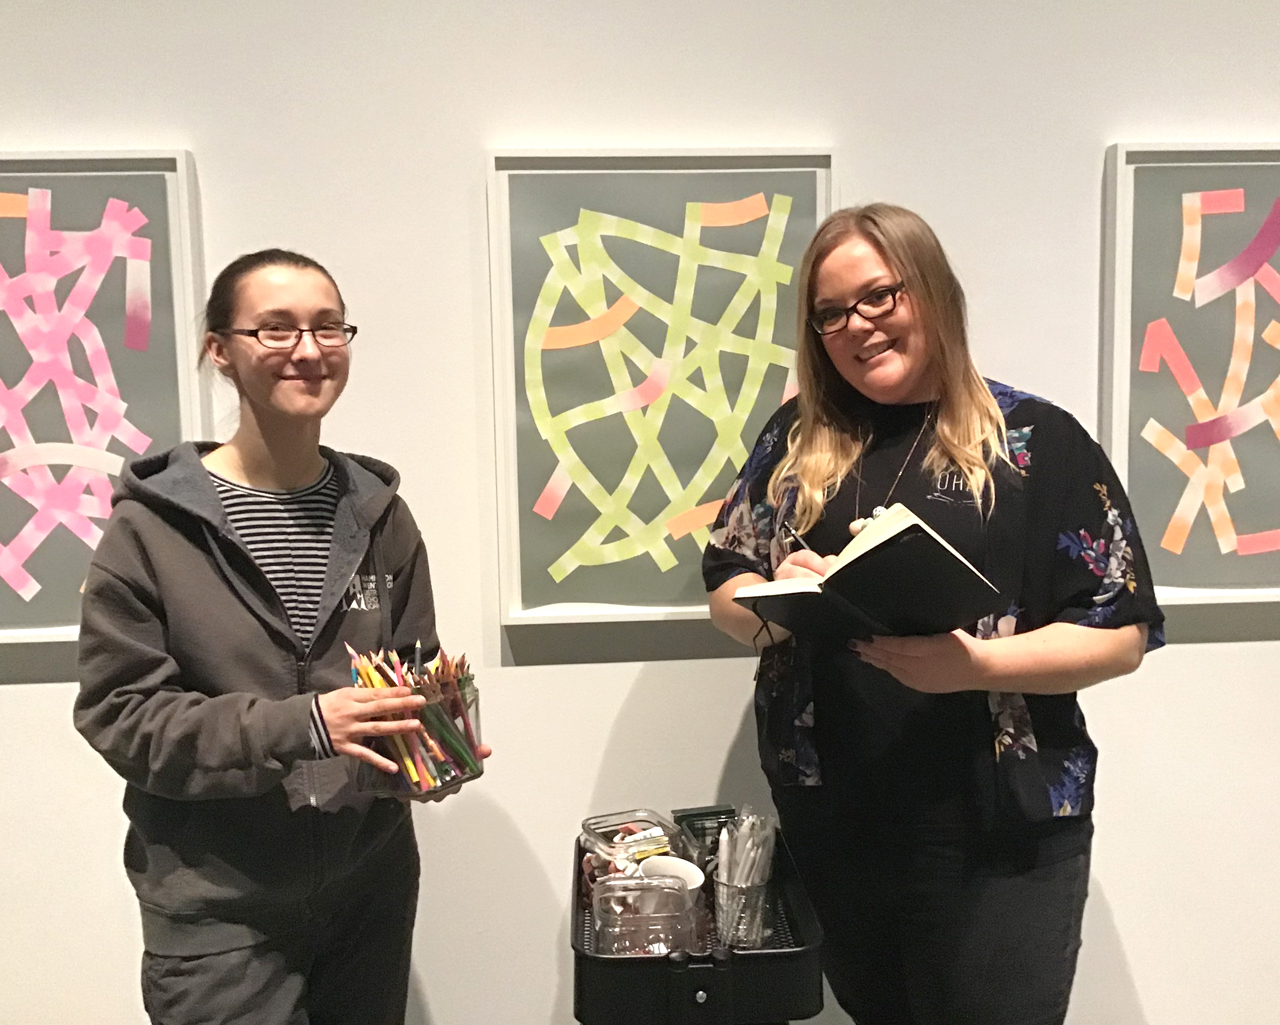 Evelyn Bohn and Amanda Jameson, McMaster University Studio Art students and new leaders of Sketching Thursdays McMaster Museum of Art